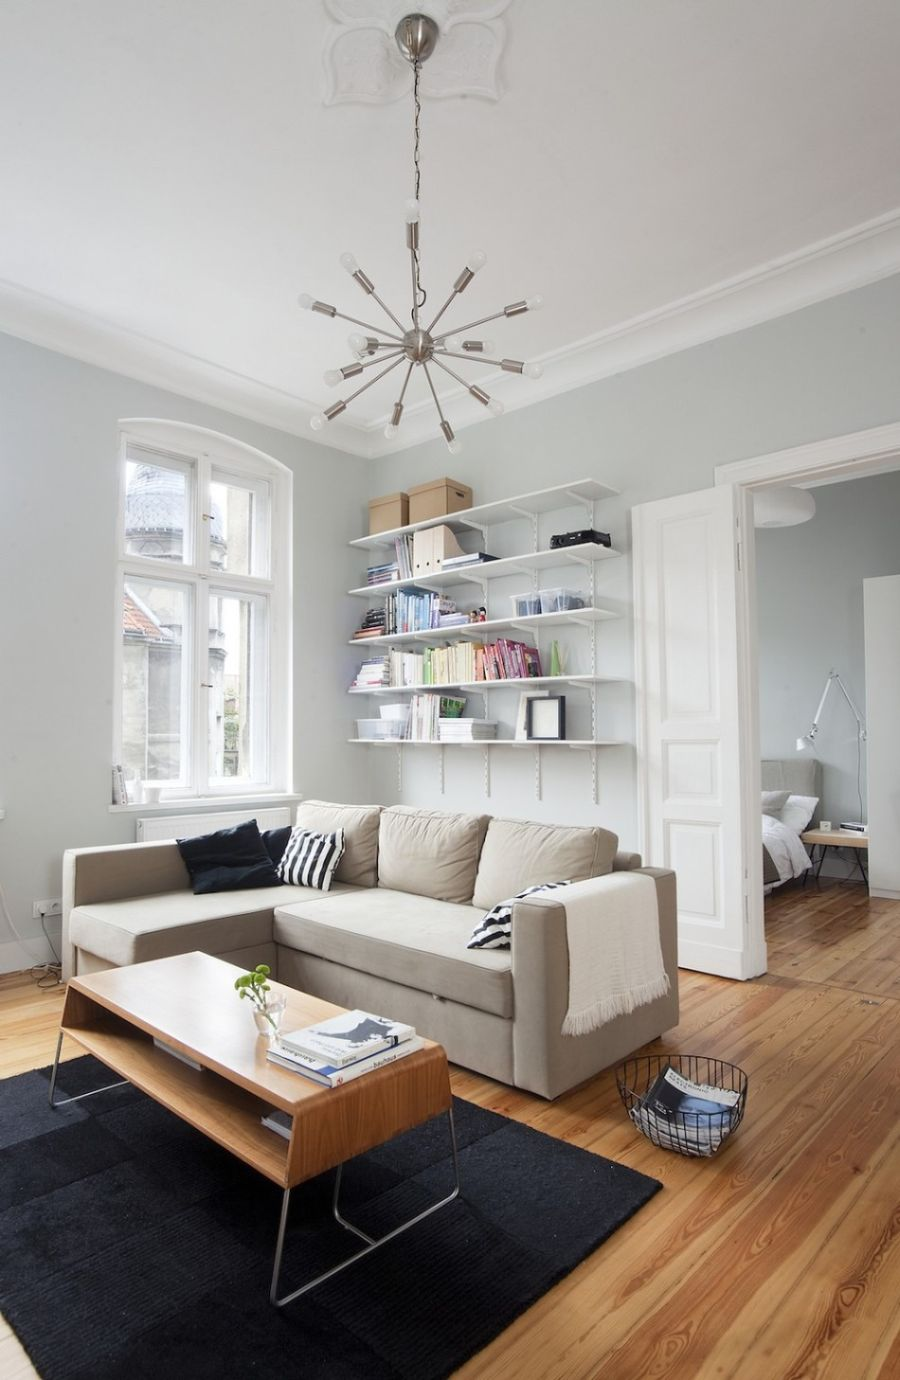 Small Apartment In Poznan Poland Showcases Cool